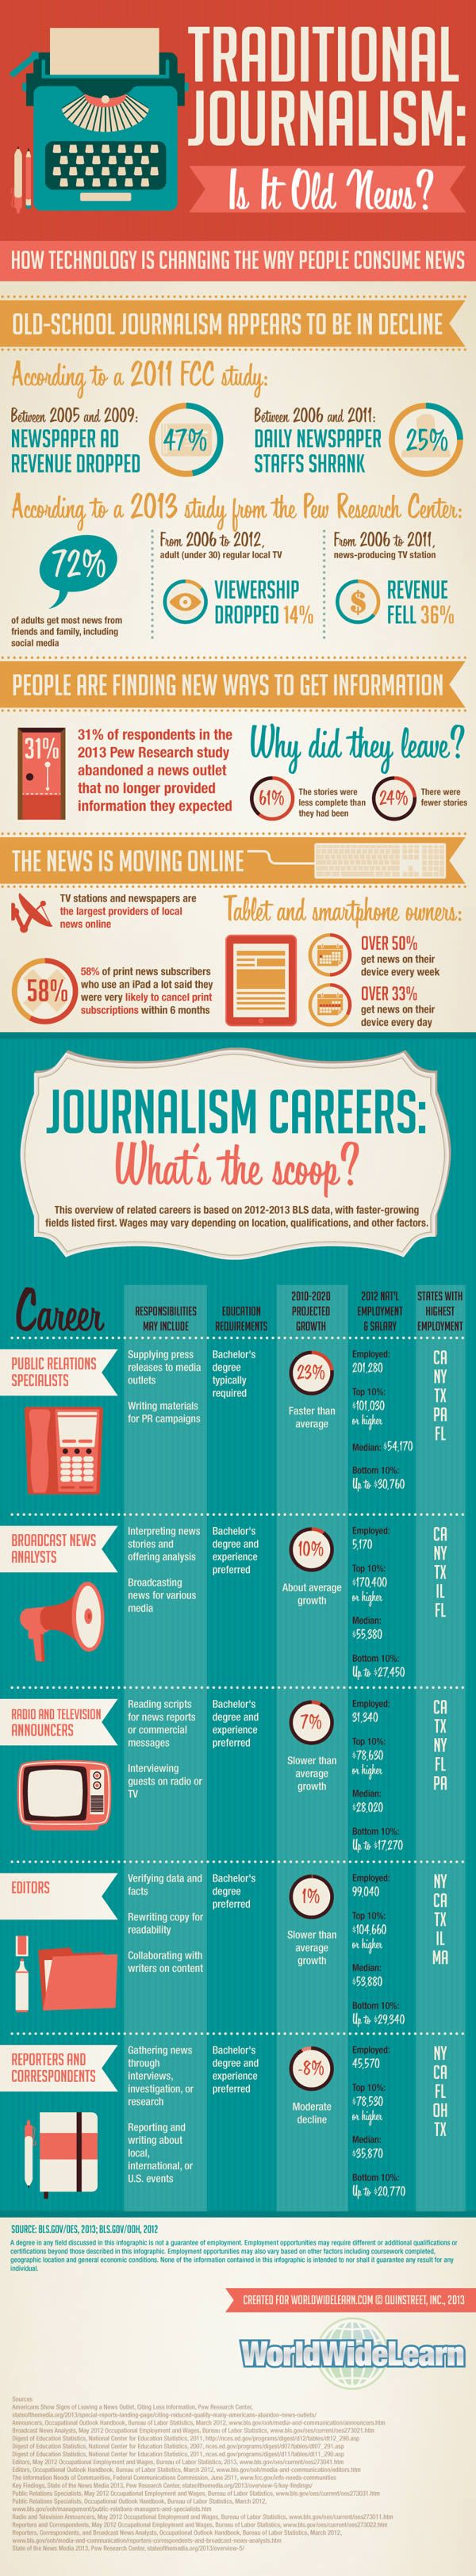 Is traditional journalism old news because of technology? Check out the infographic to find out!